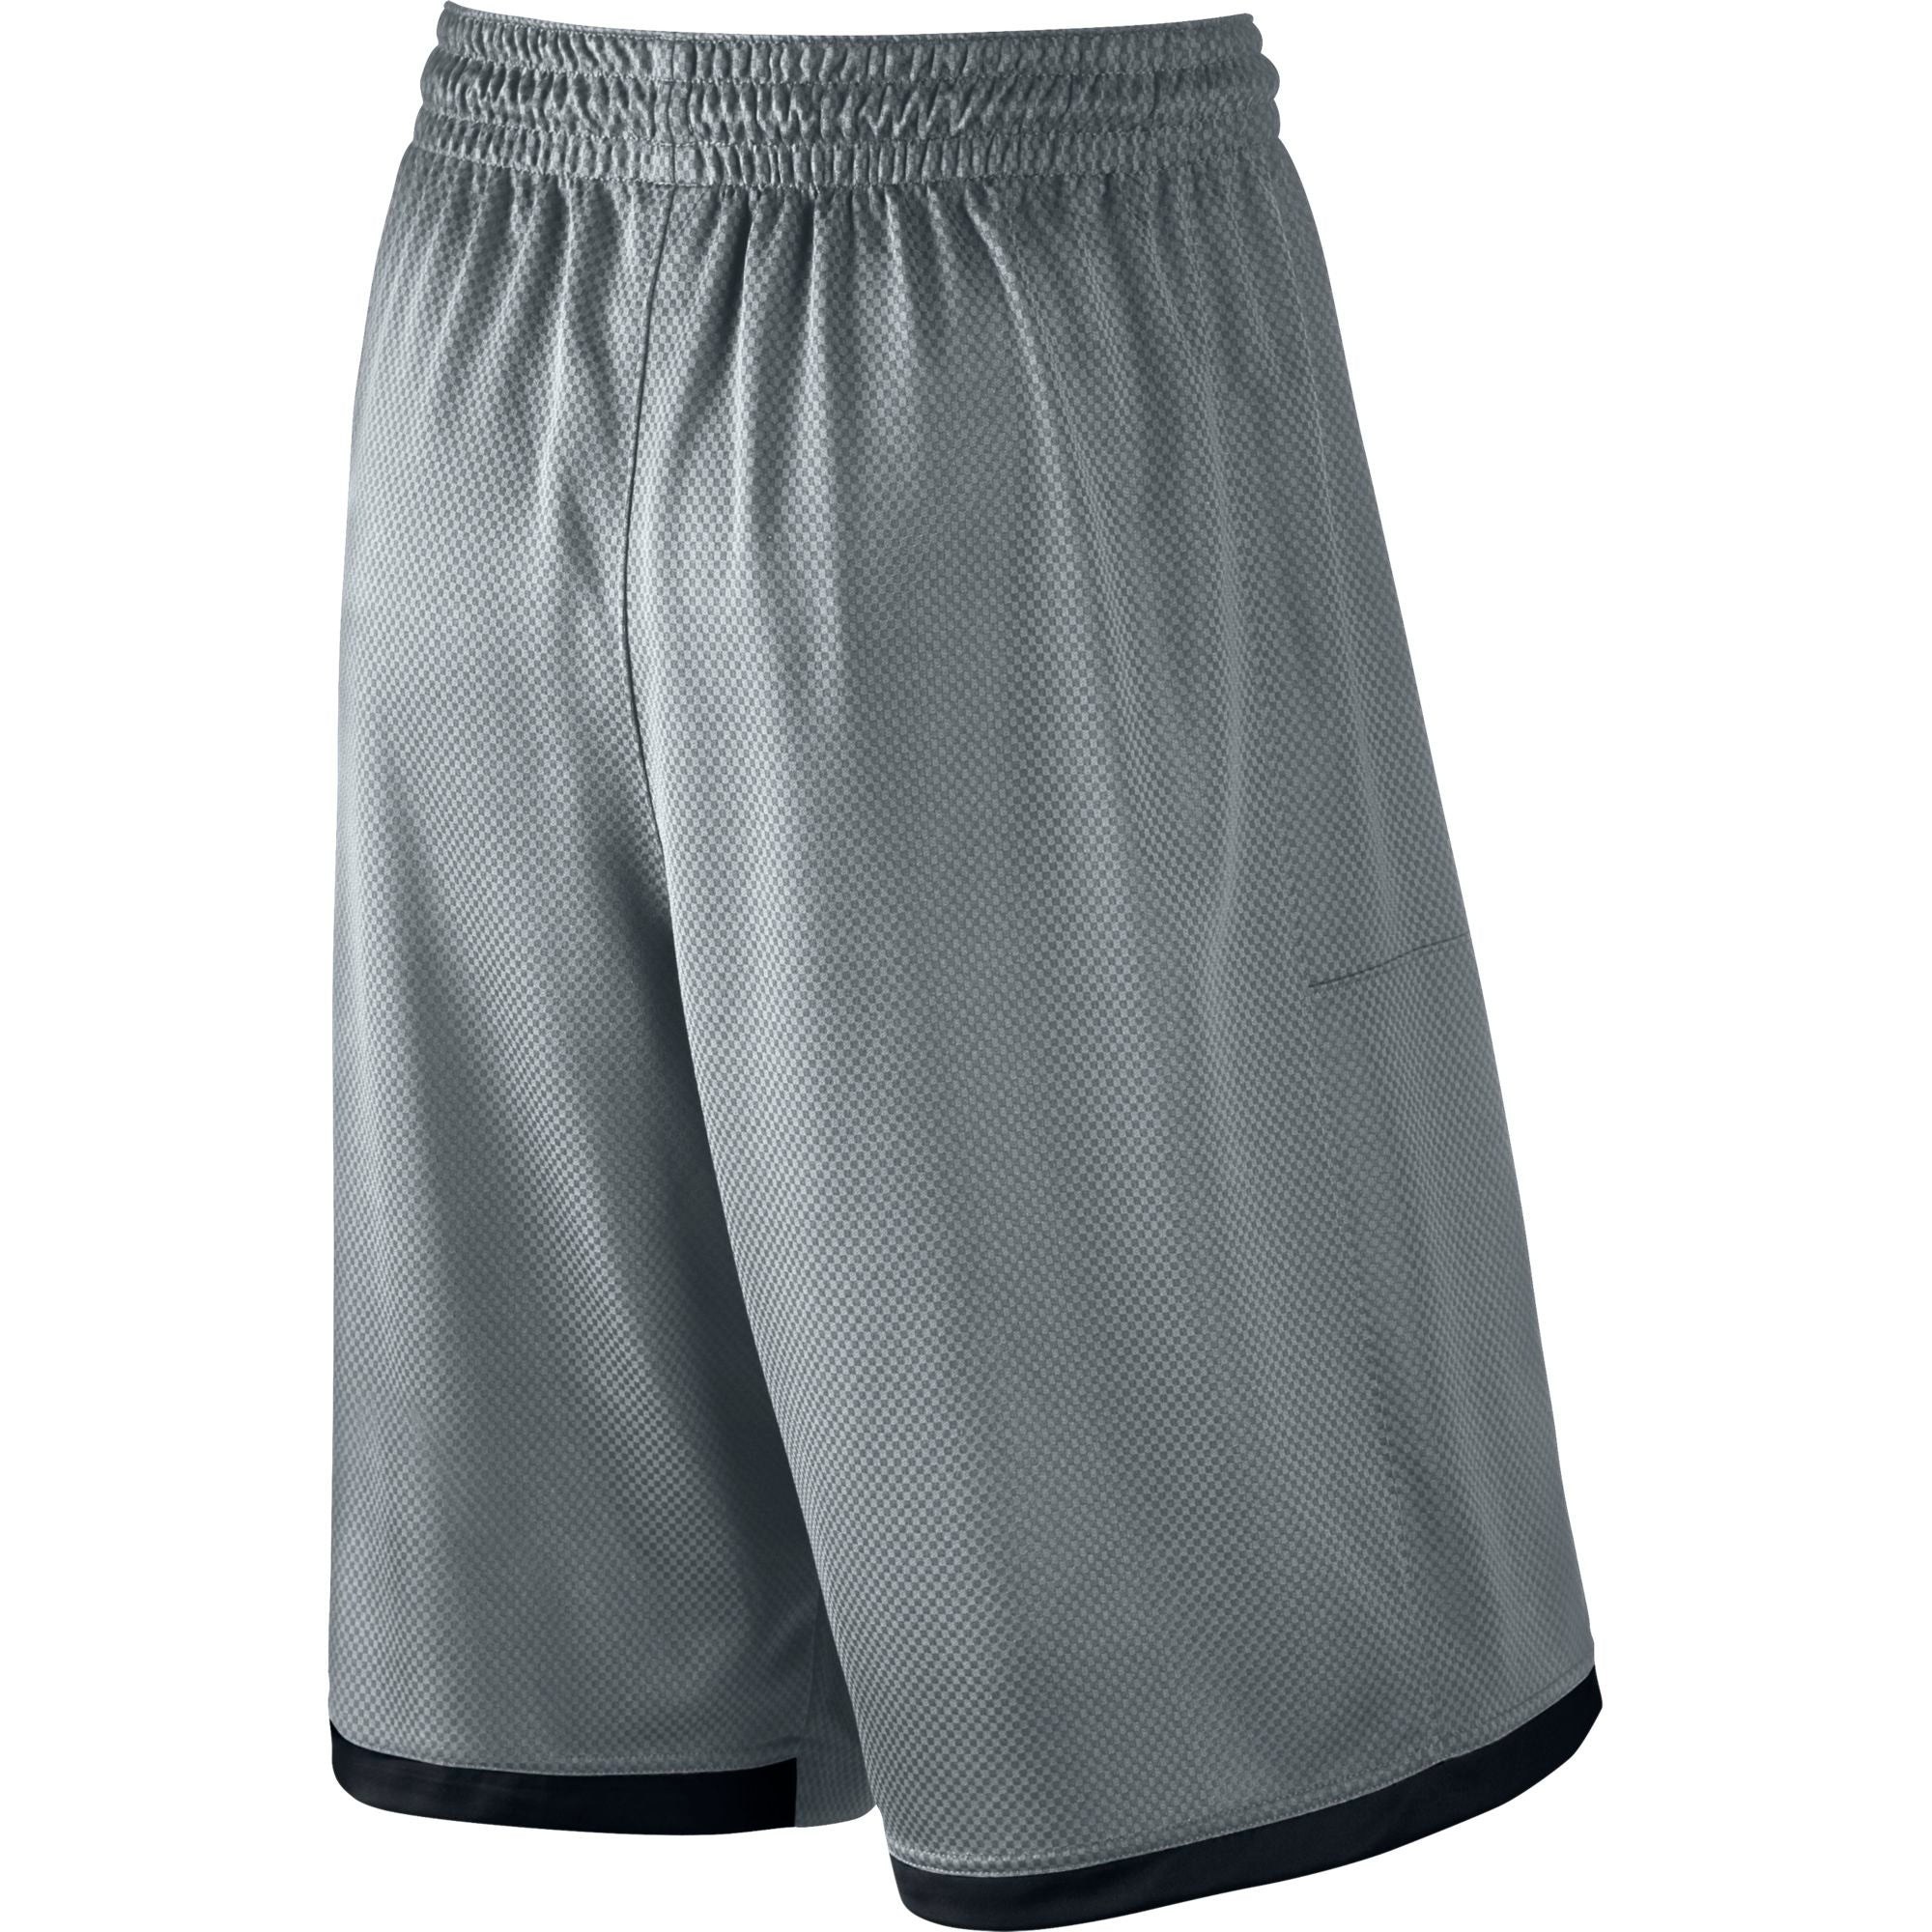 Nike Jordan Crossover Basketball Shorts - Wolf Grey/Black